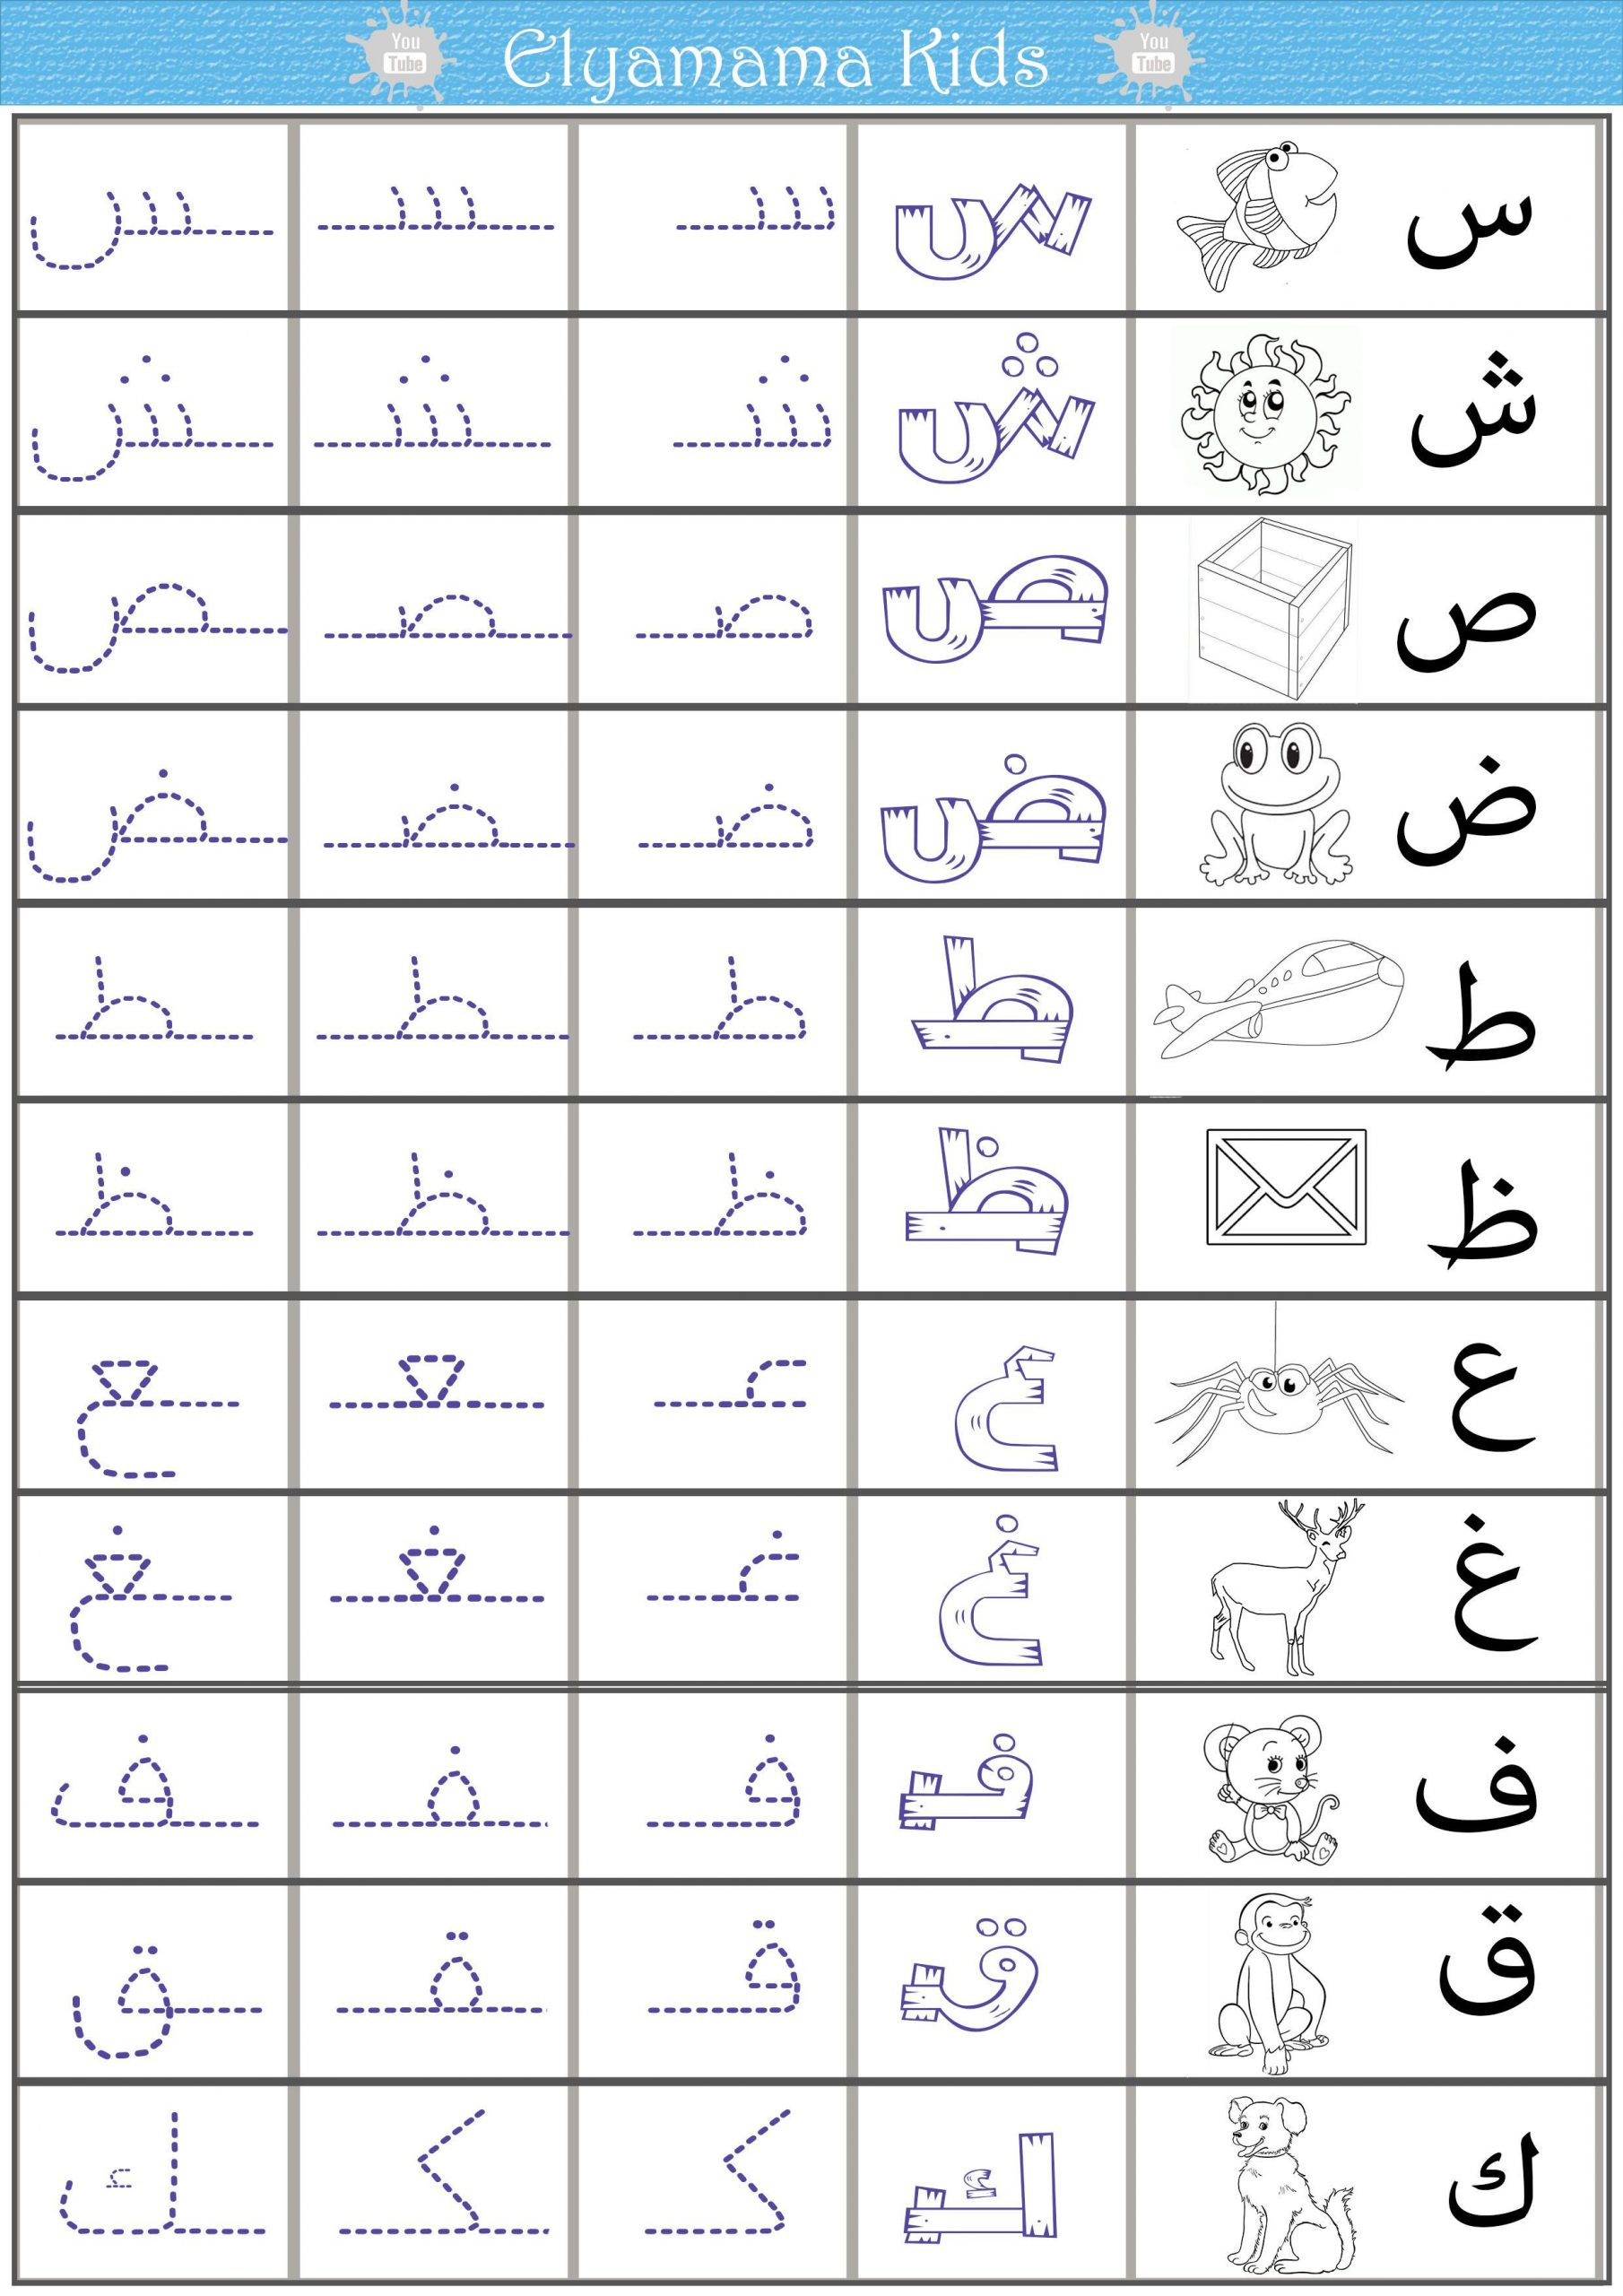 Learning Arabic Alphabet Worksheets Elayama Kid1